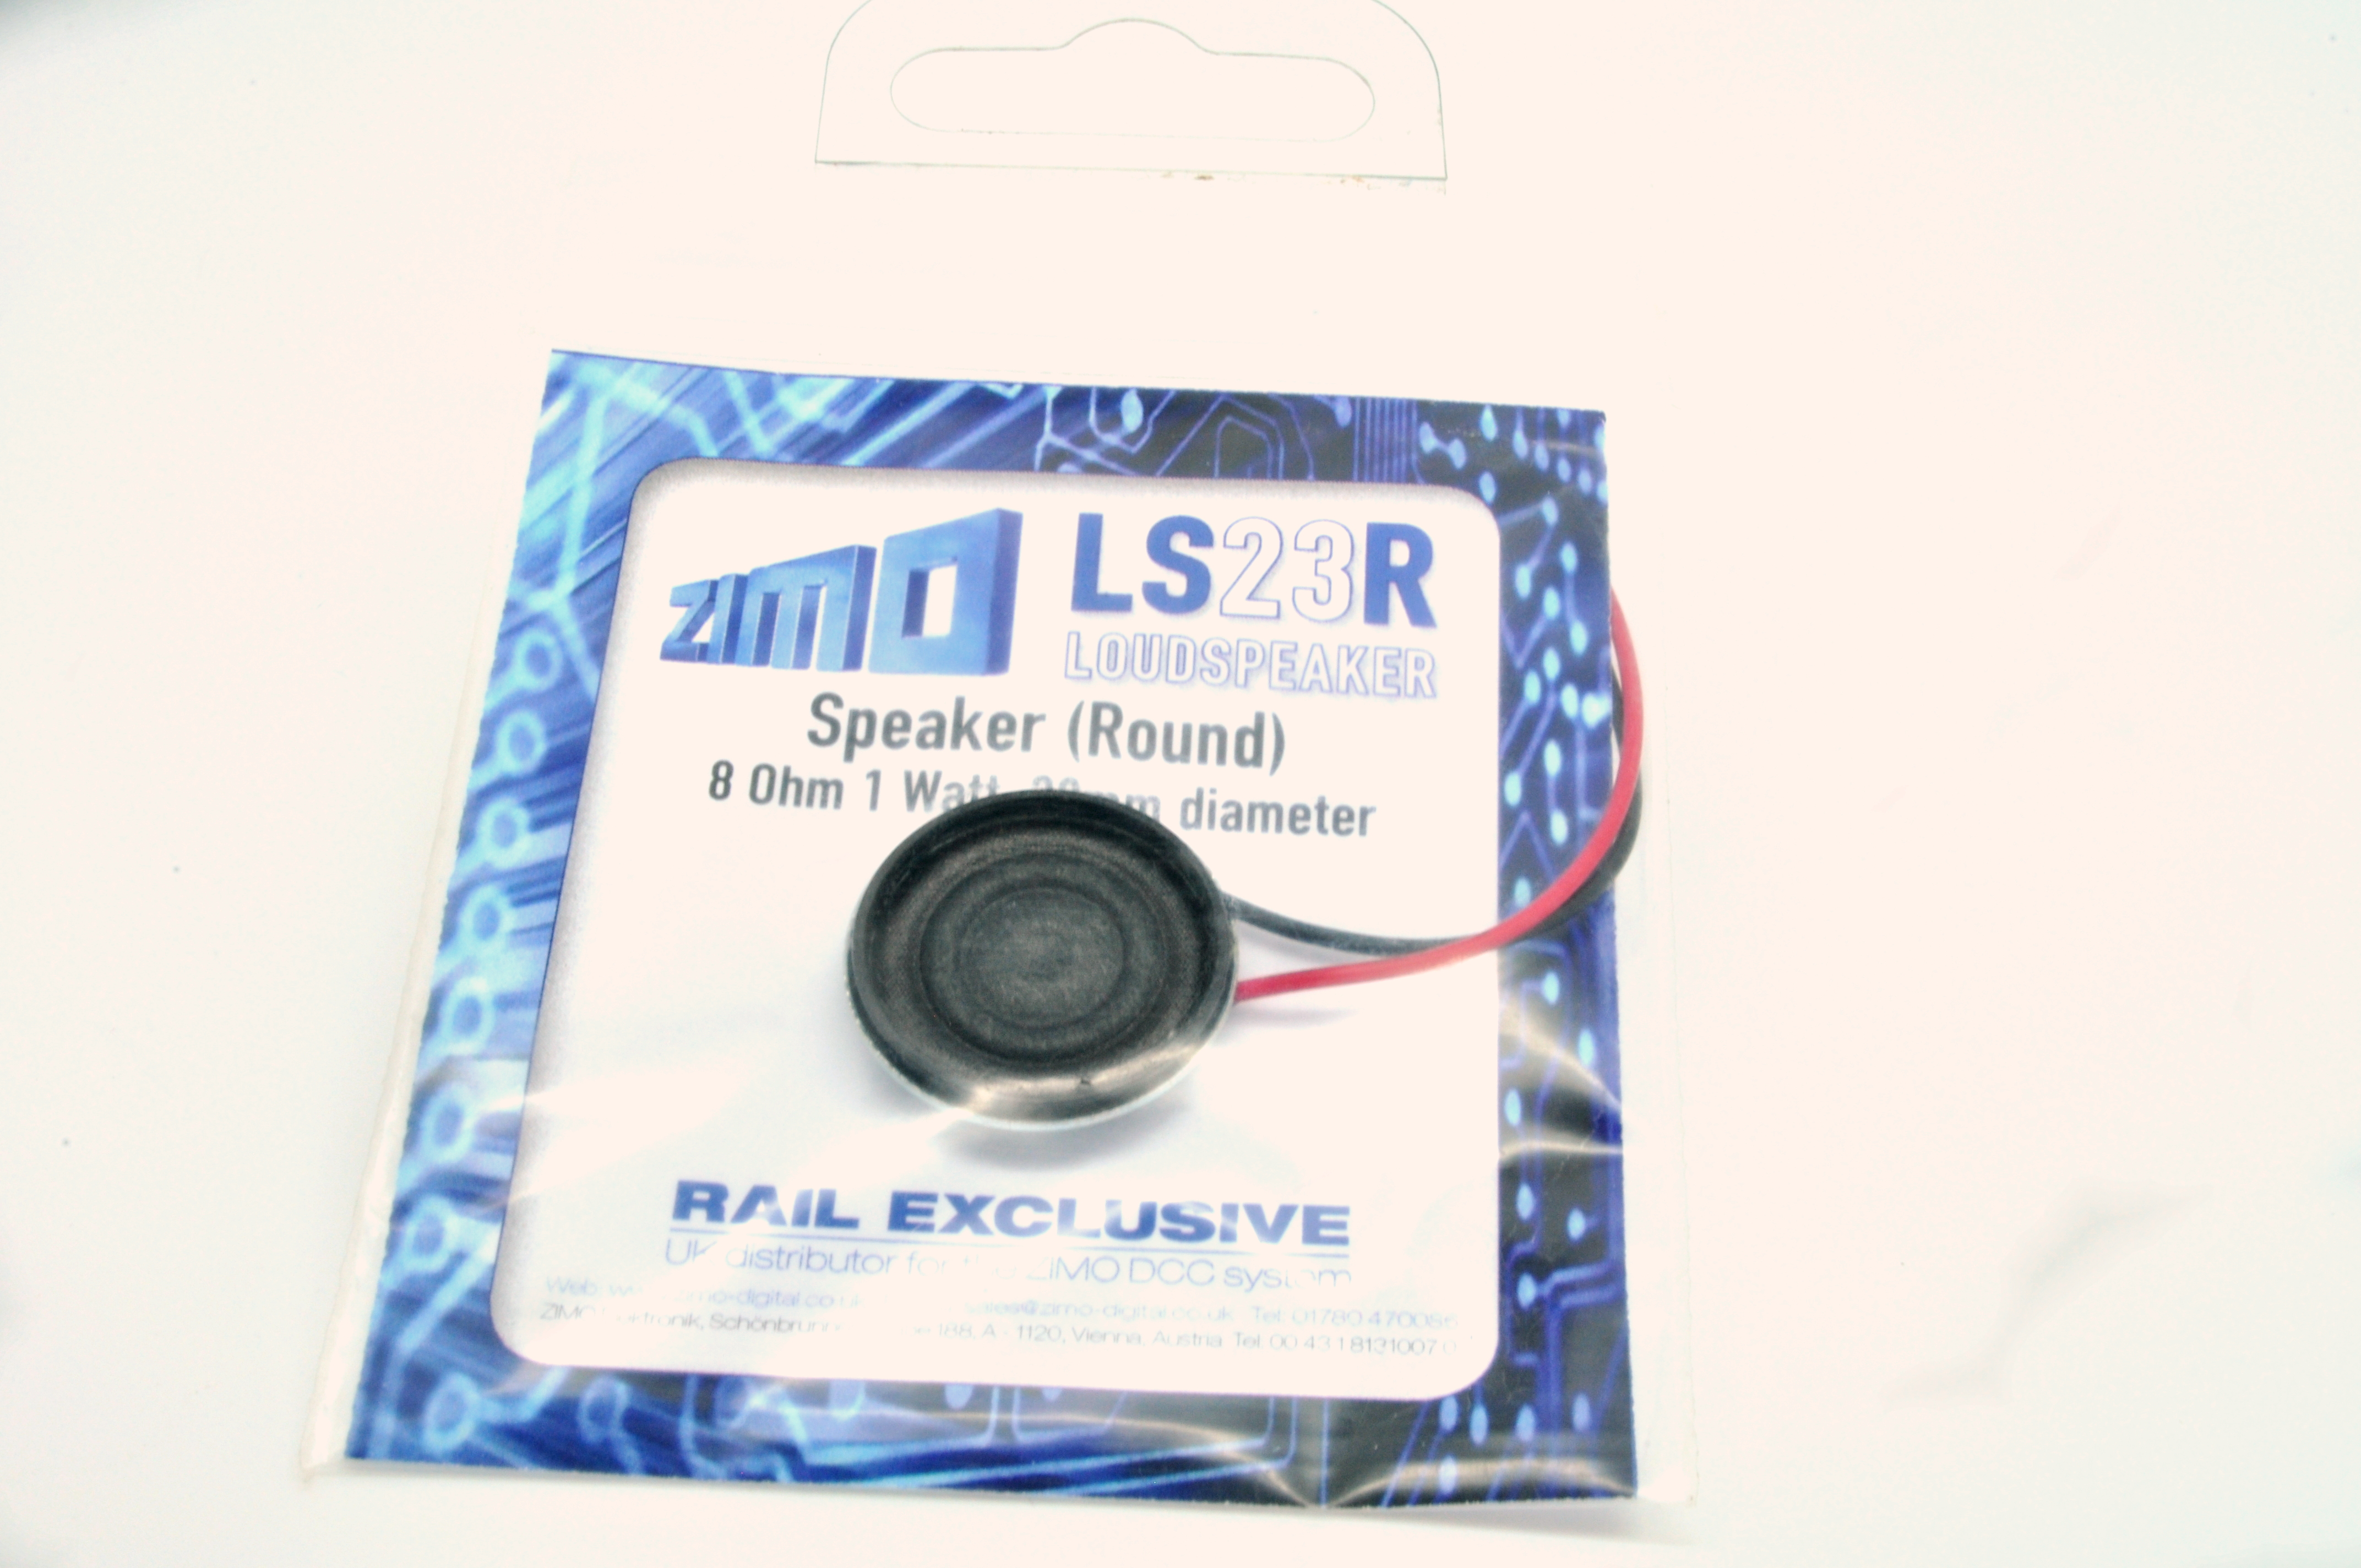 Zimo LS23R Speaker 8 Ohm 1Watt 23mm